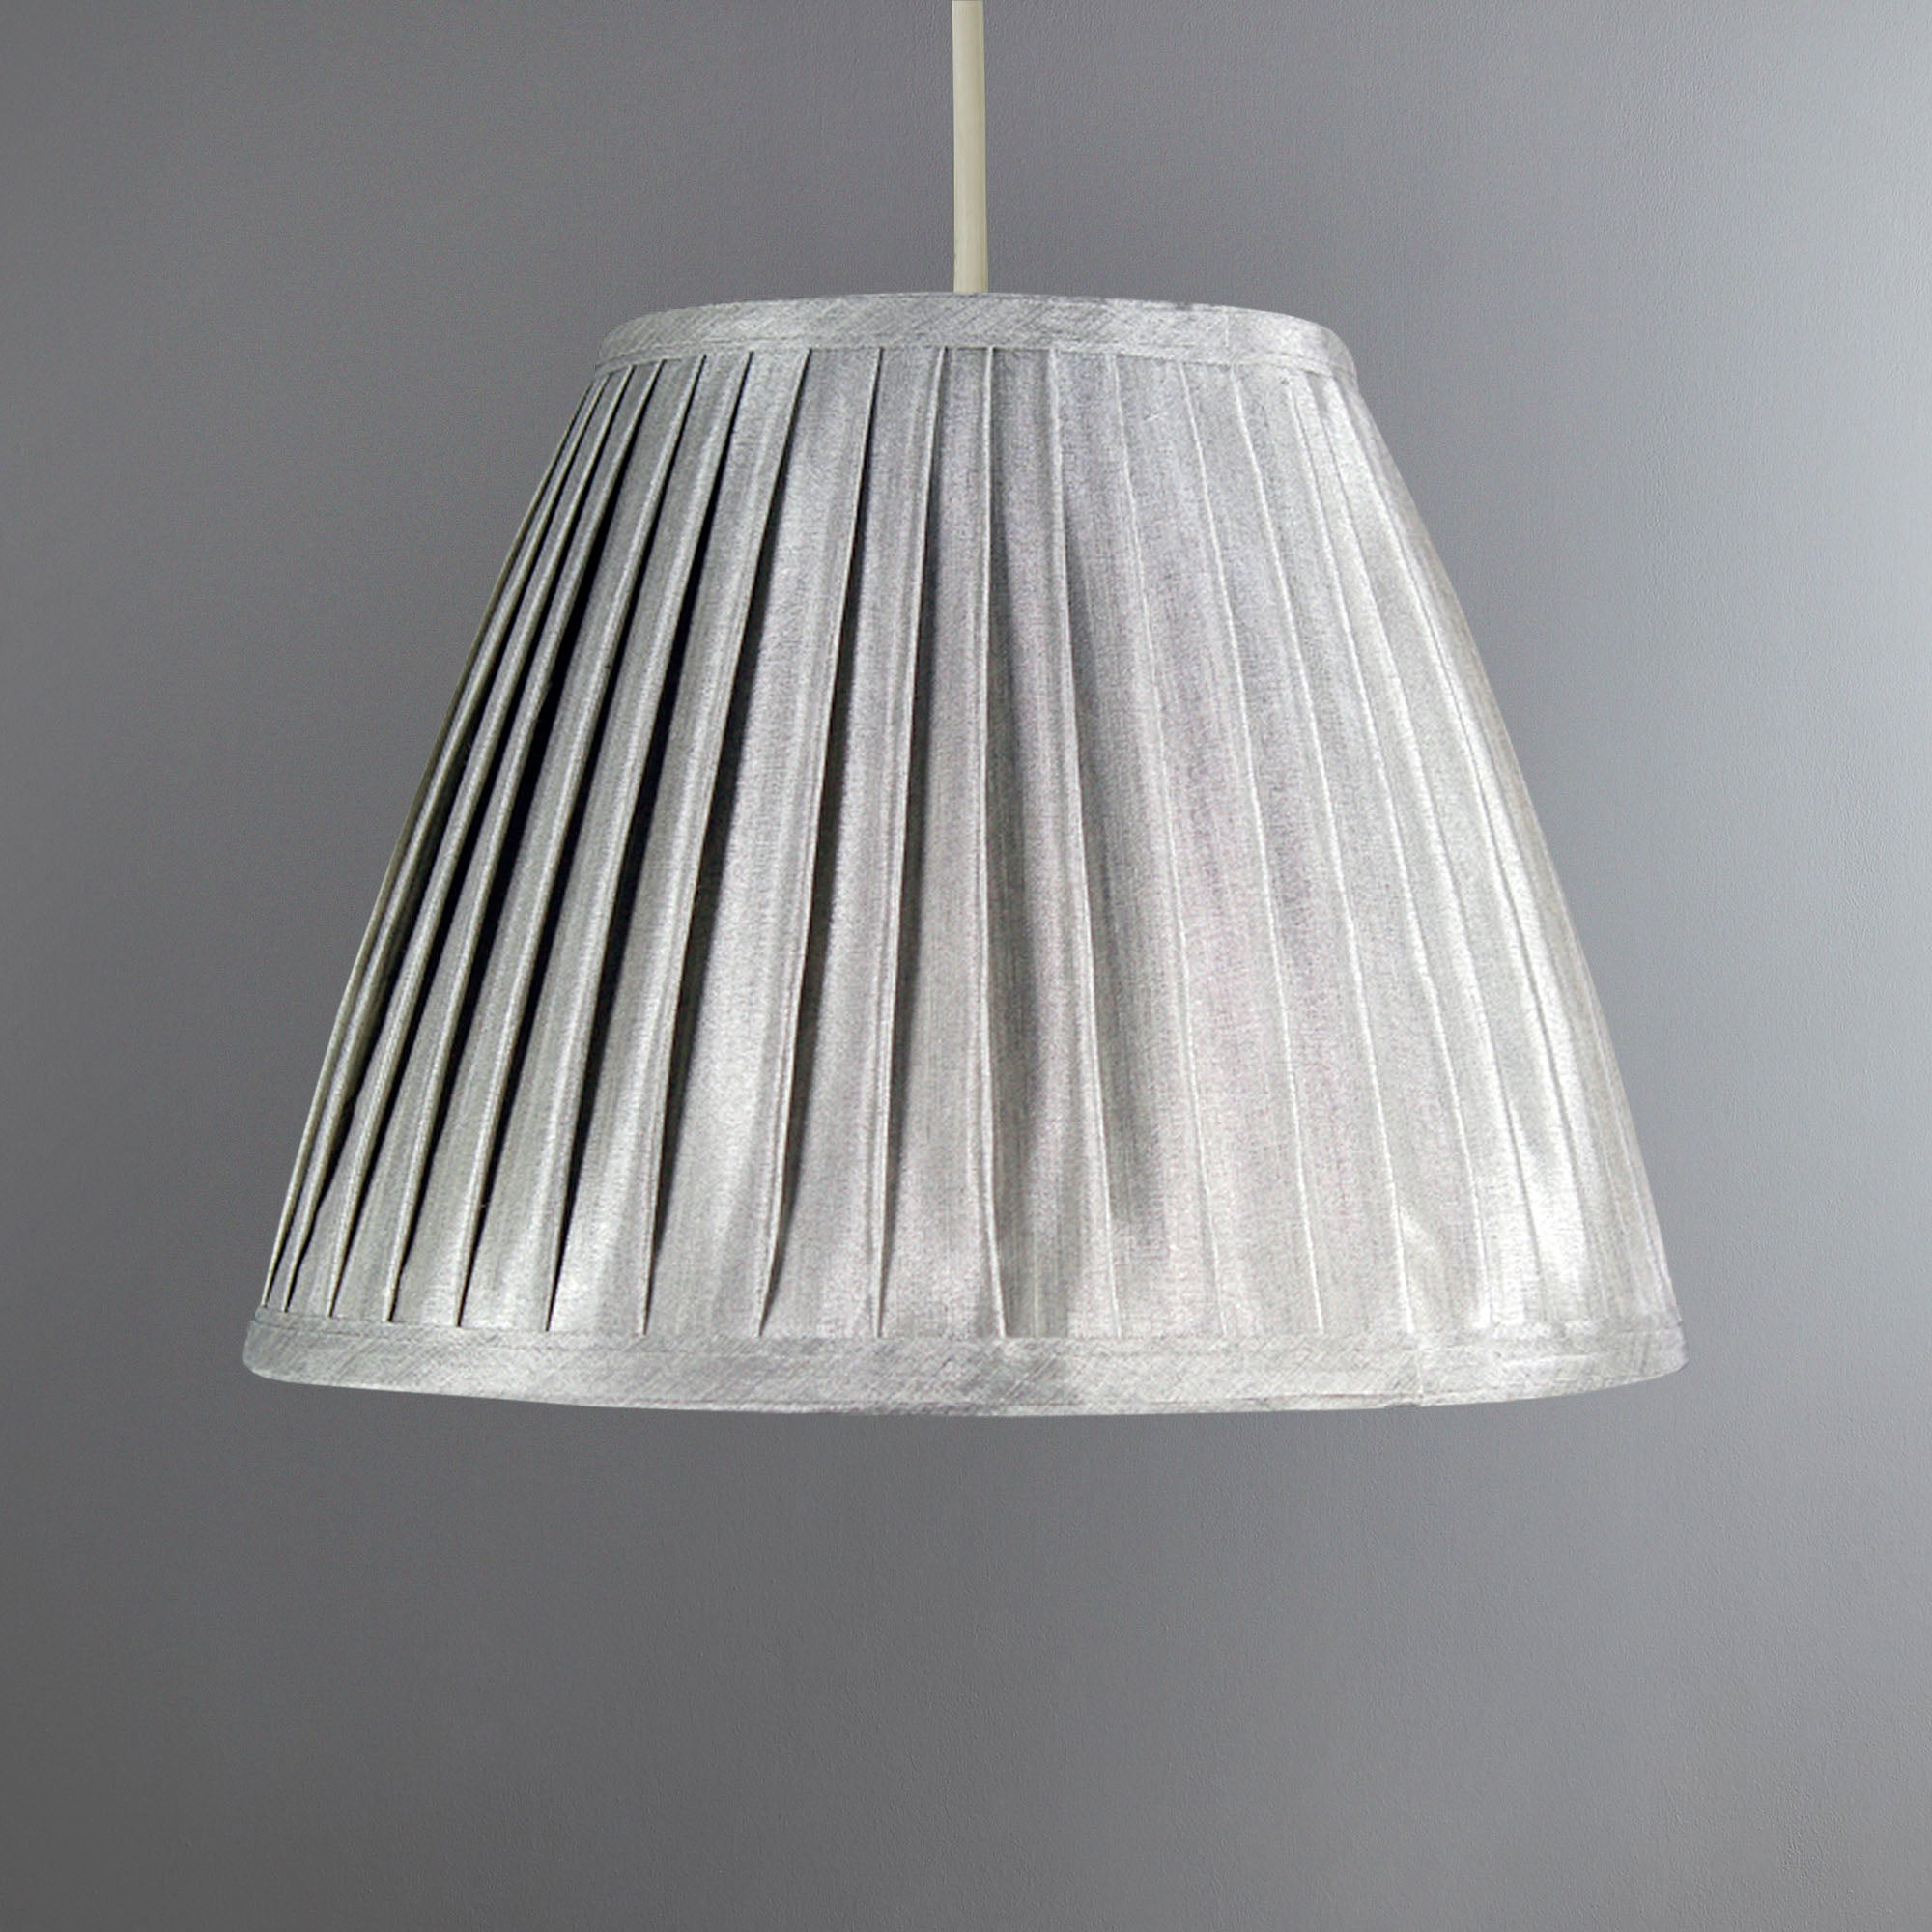 Dorma Clarence Soft Pleat Pendant Shade